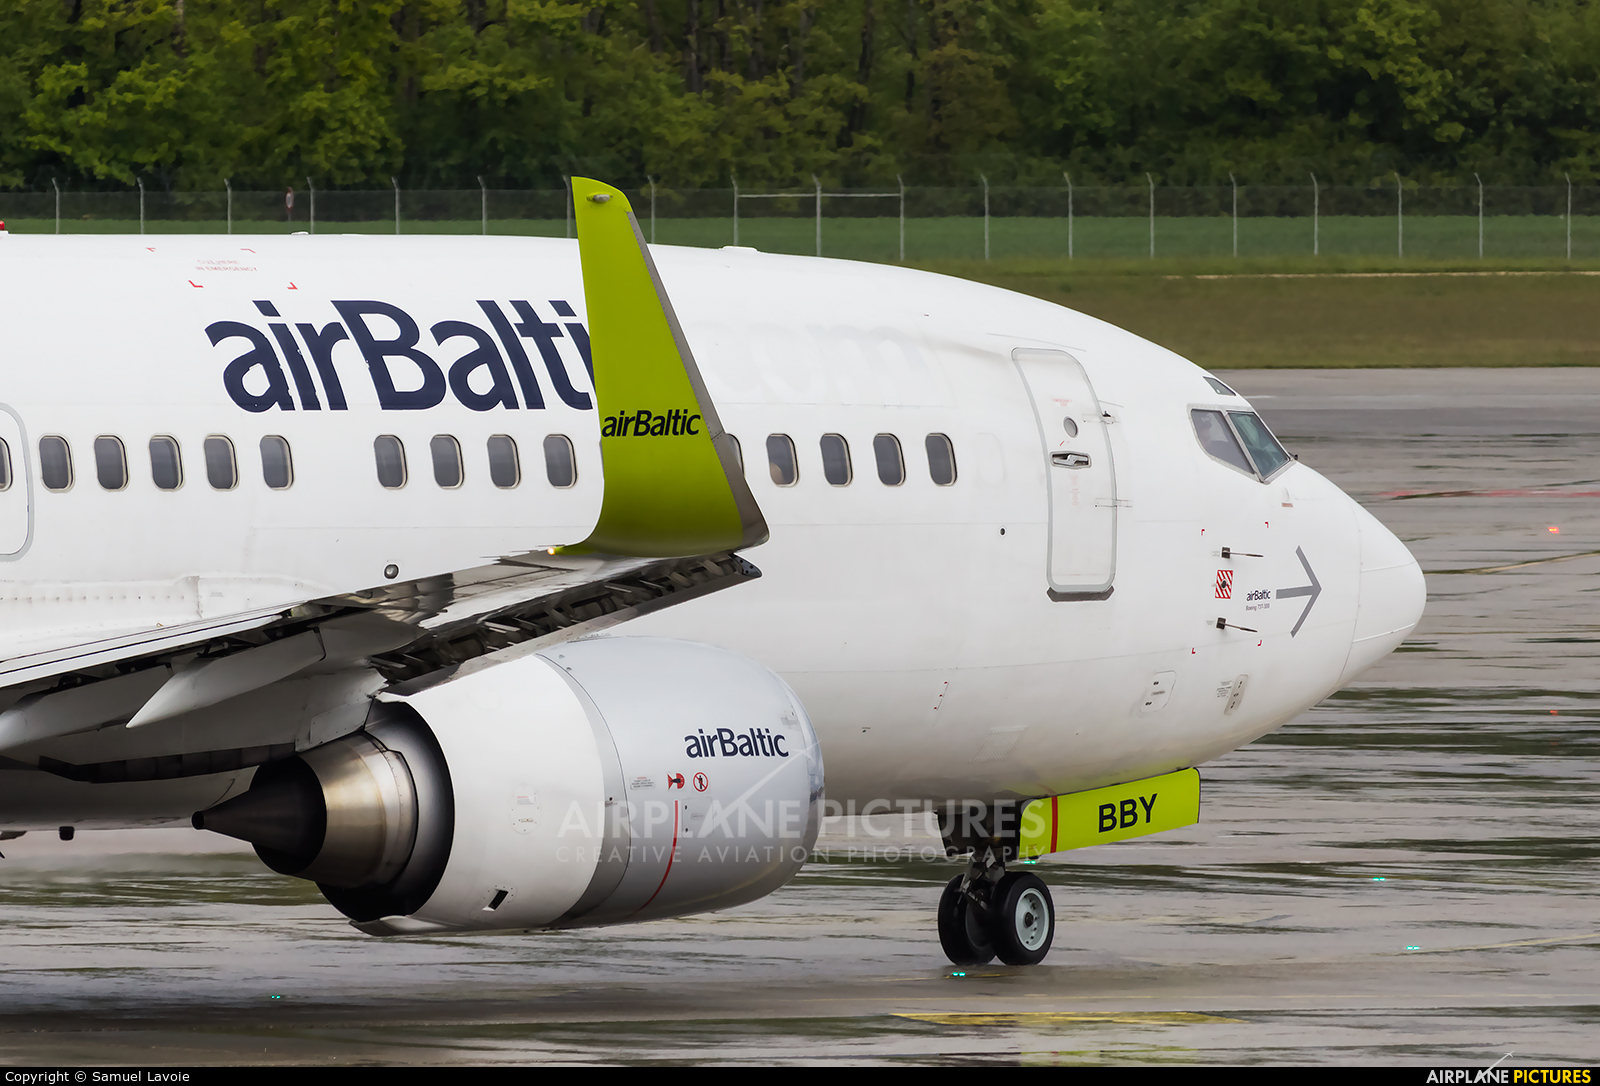 Air Baltic YL-BBY aircraft at Geneva Intl